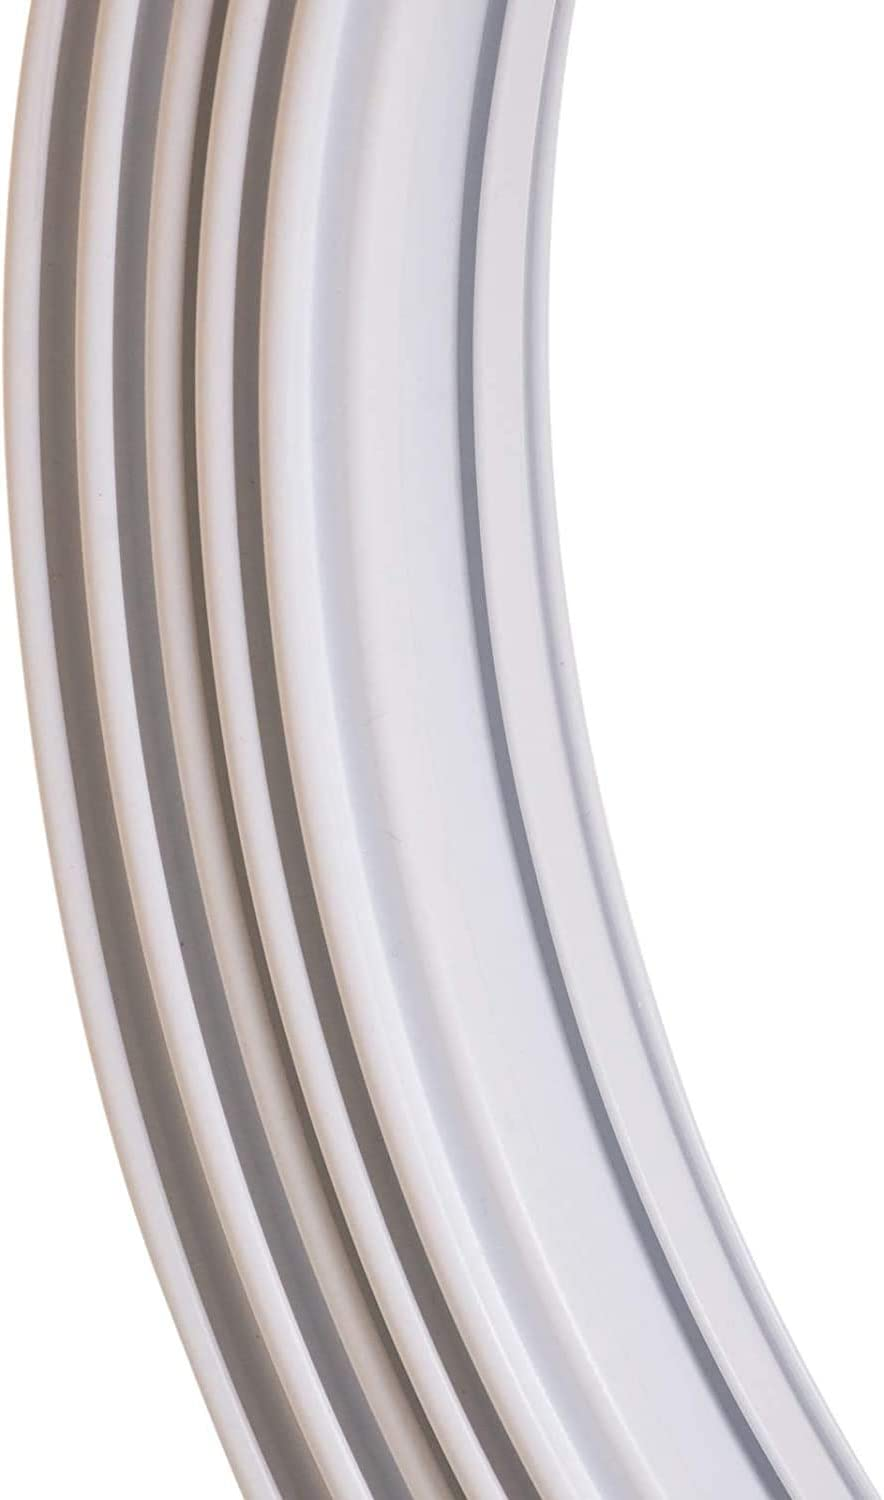 6m Bendable Curtain Track Coil for Bay /& Straight Window Windows and Rail Fixings